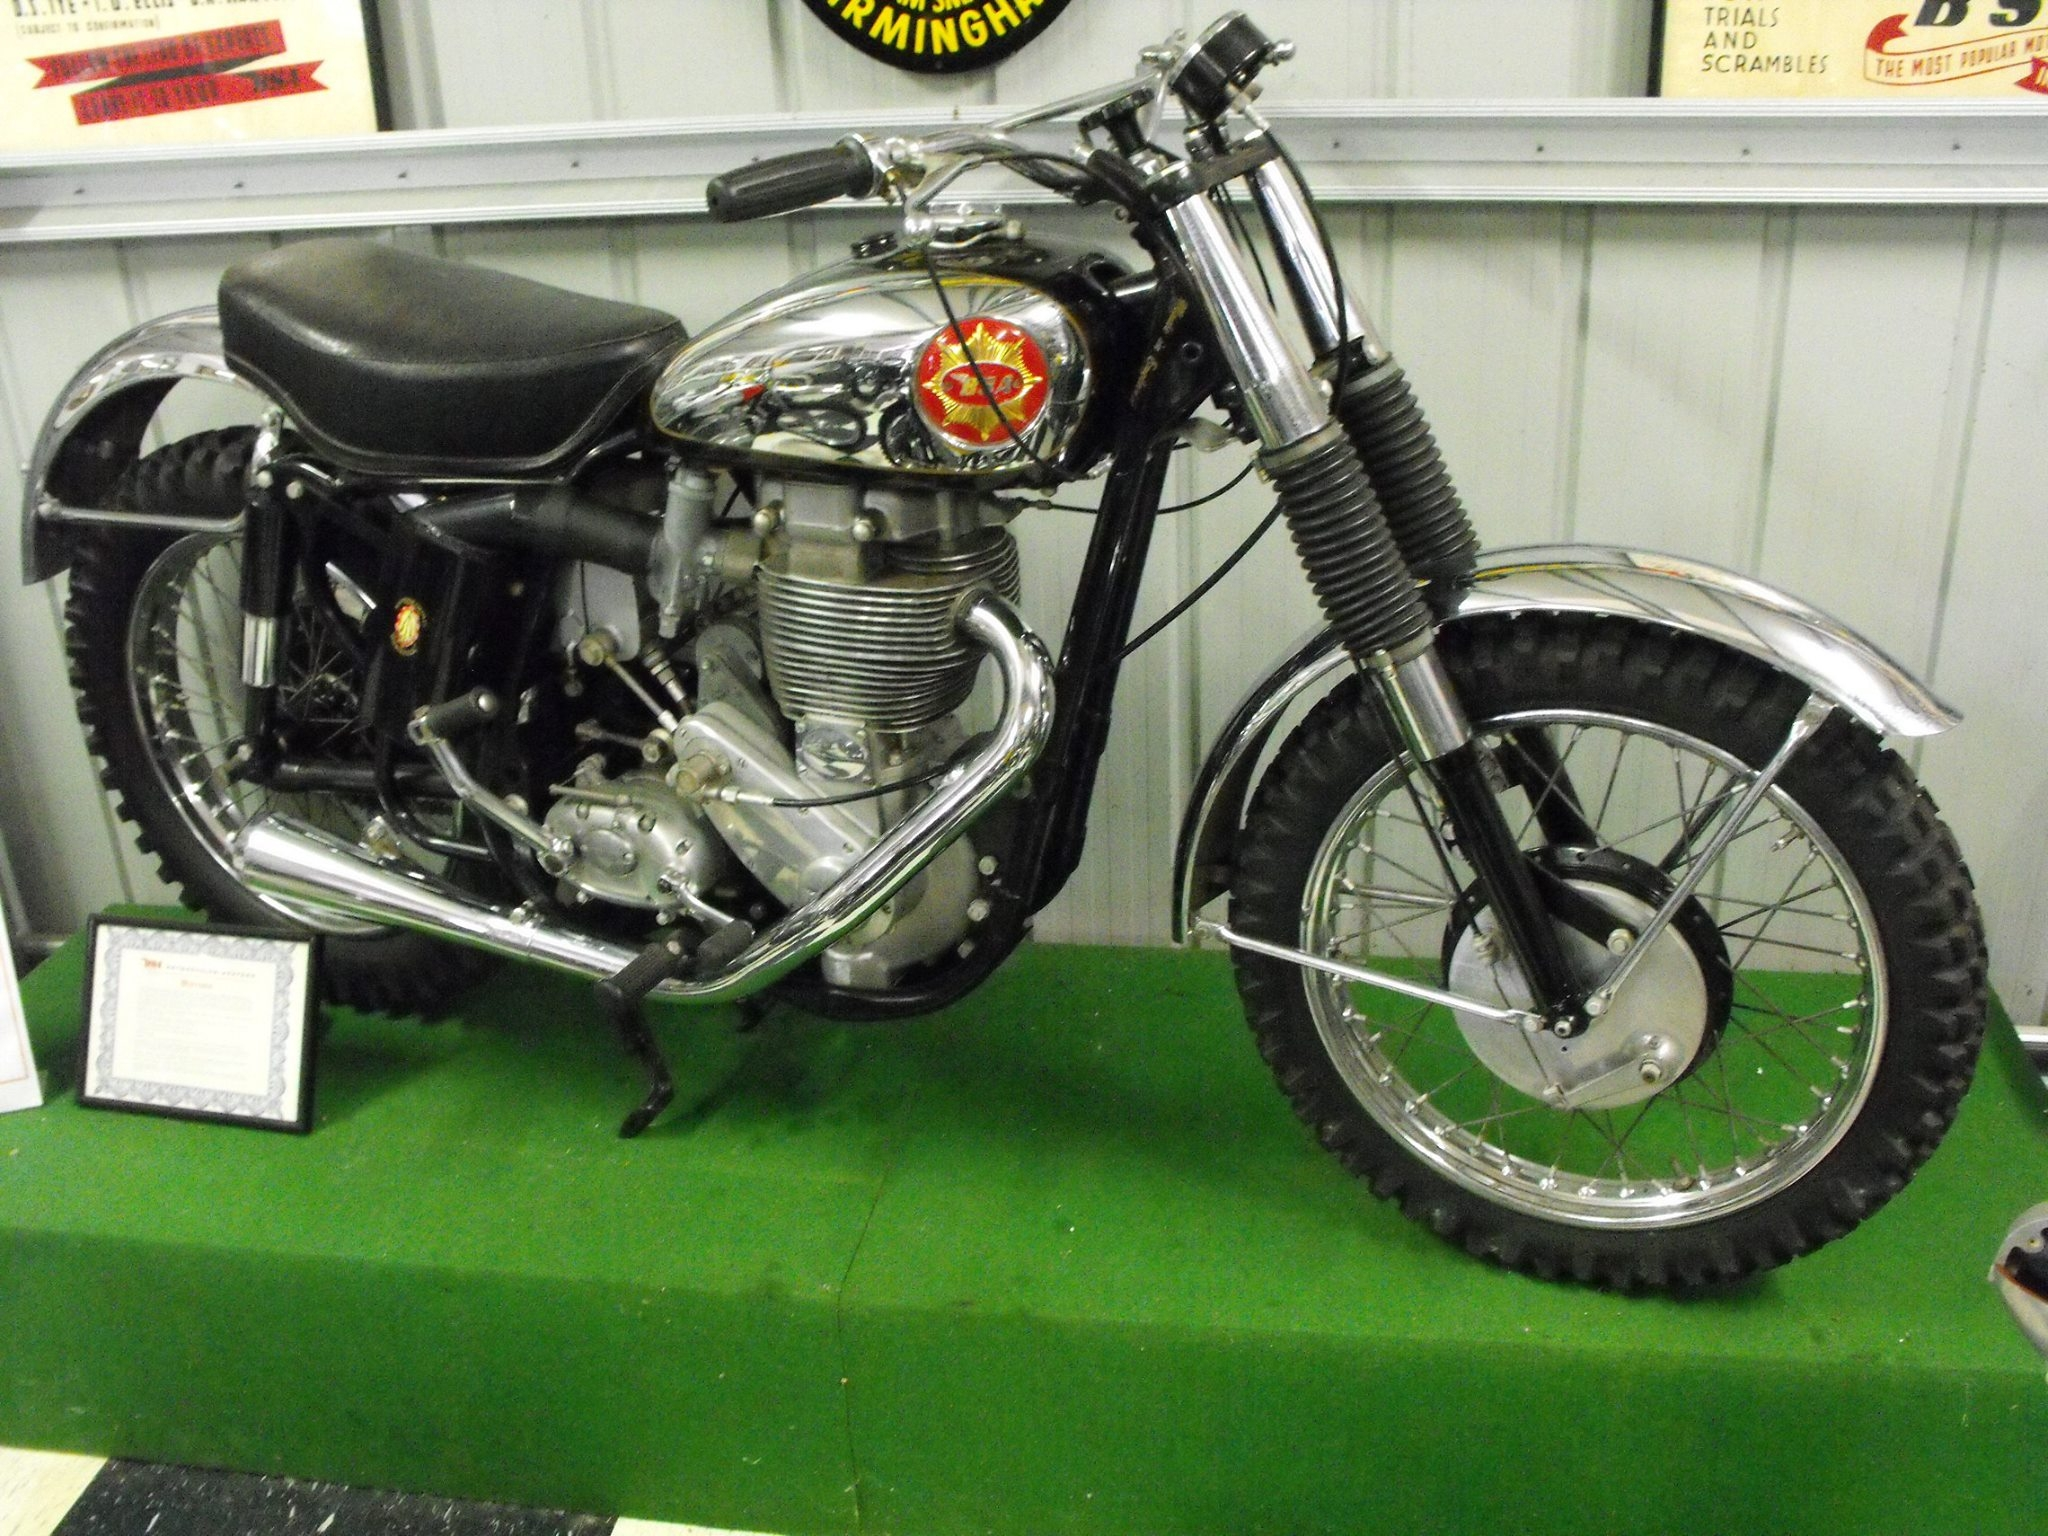 1960 BSA Goldstar Scrambler - Brand new!!